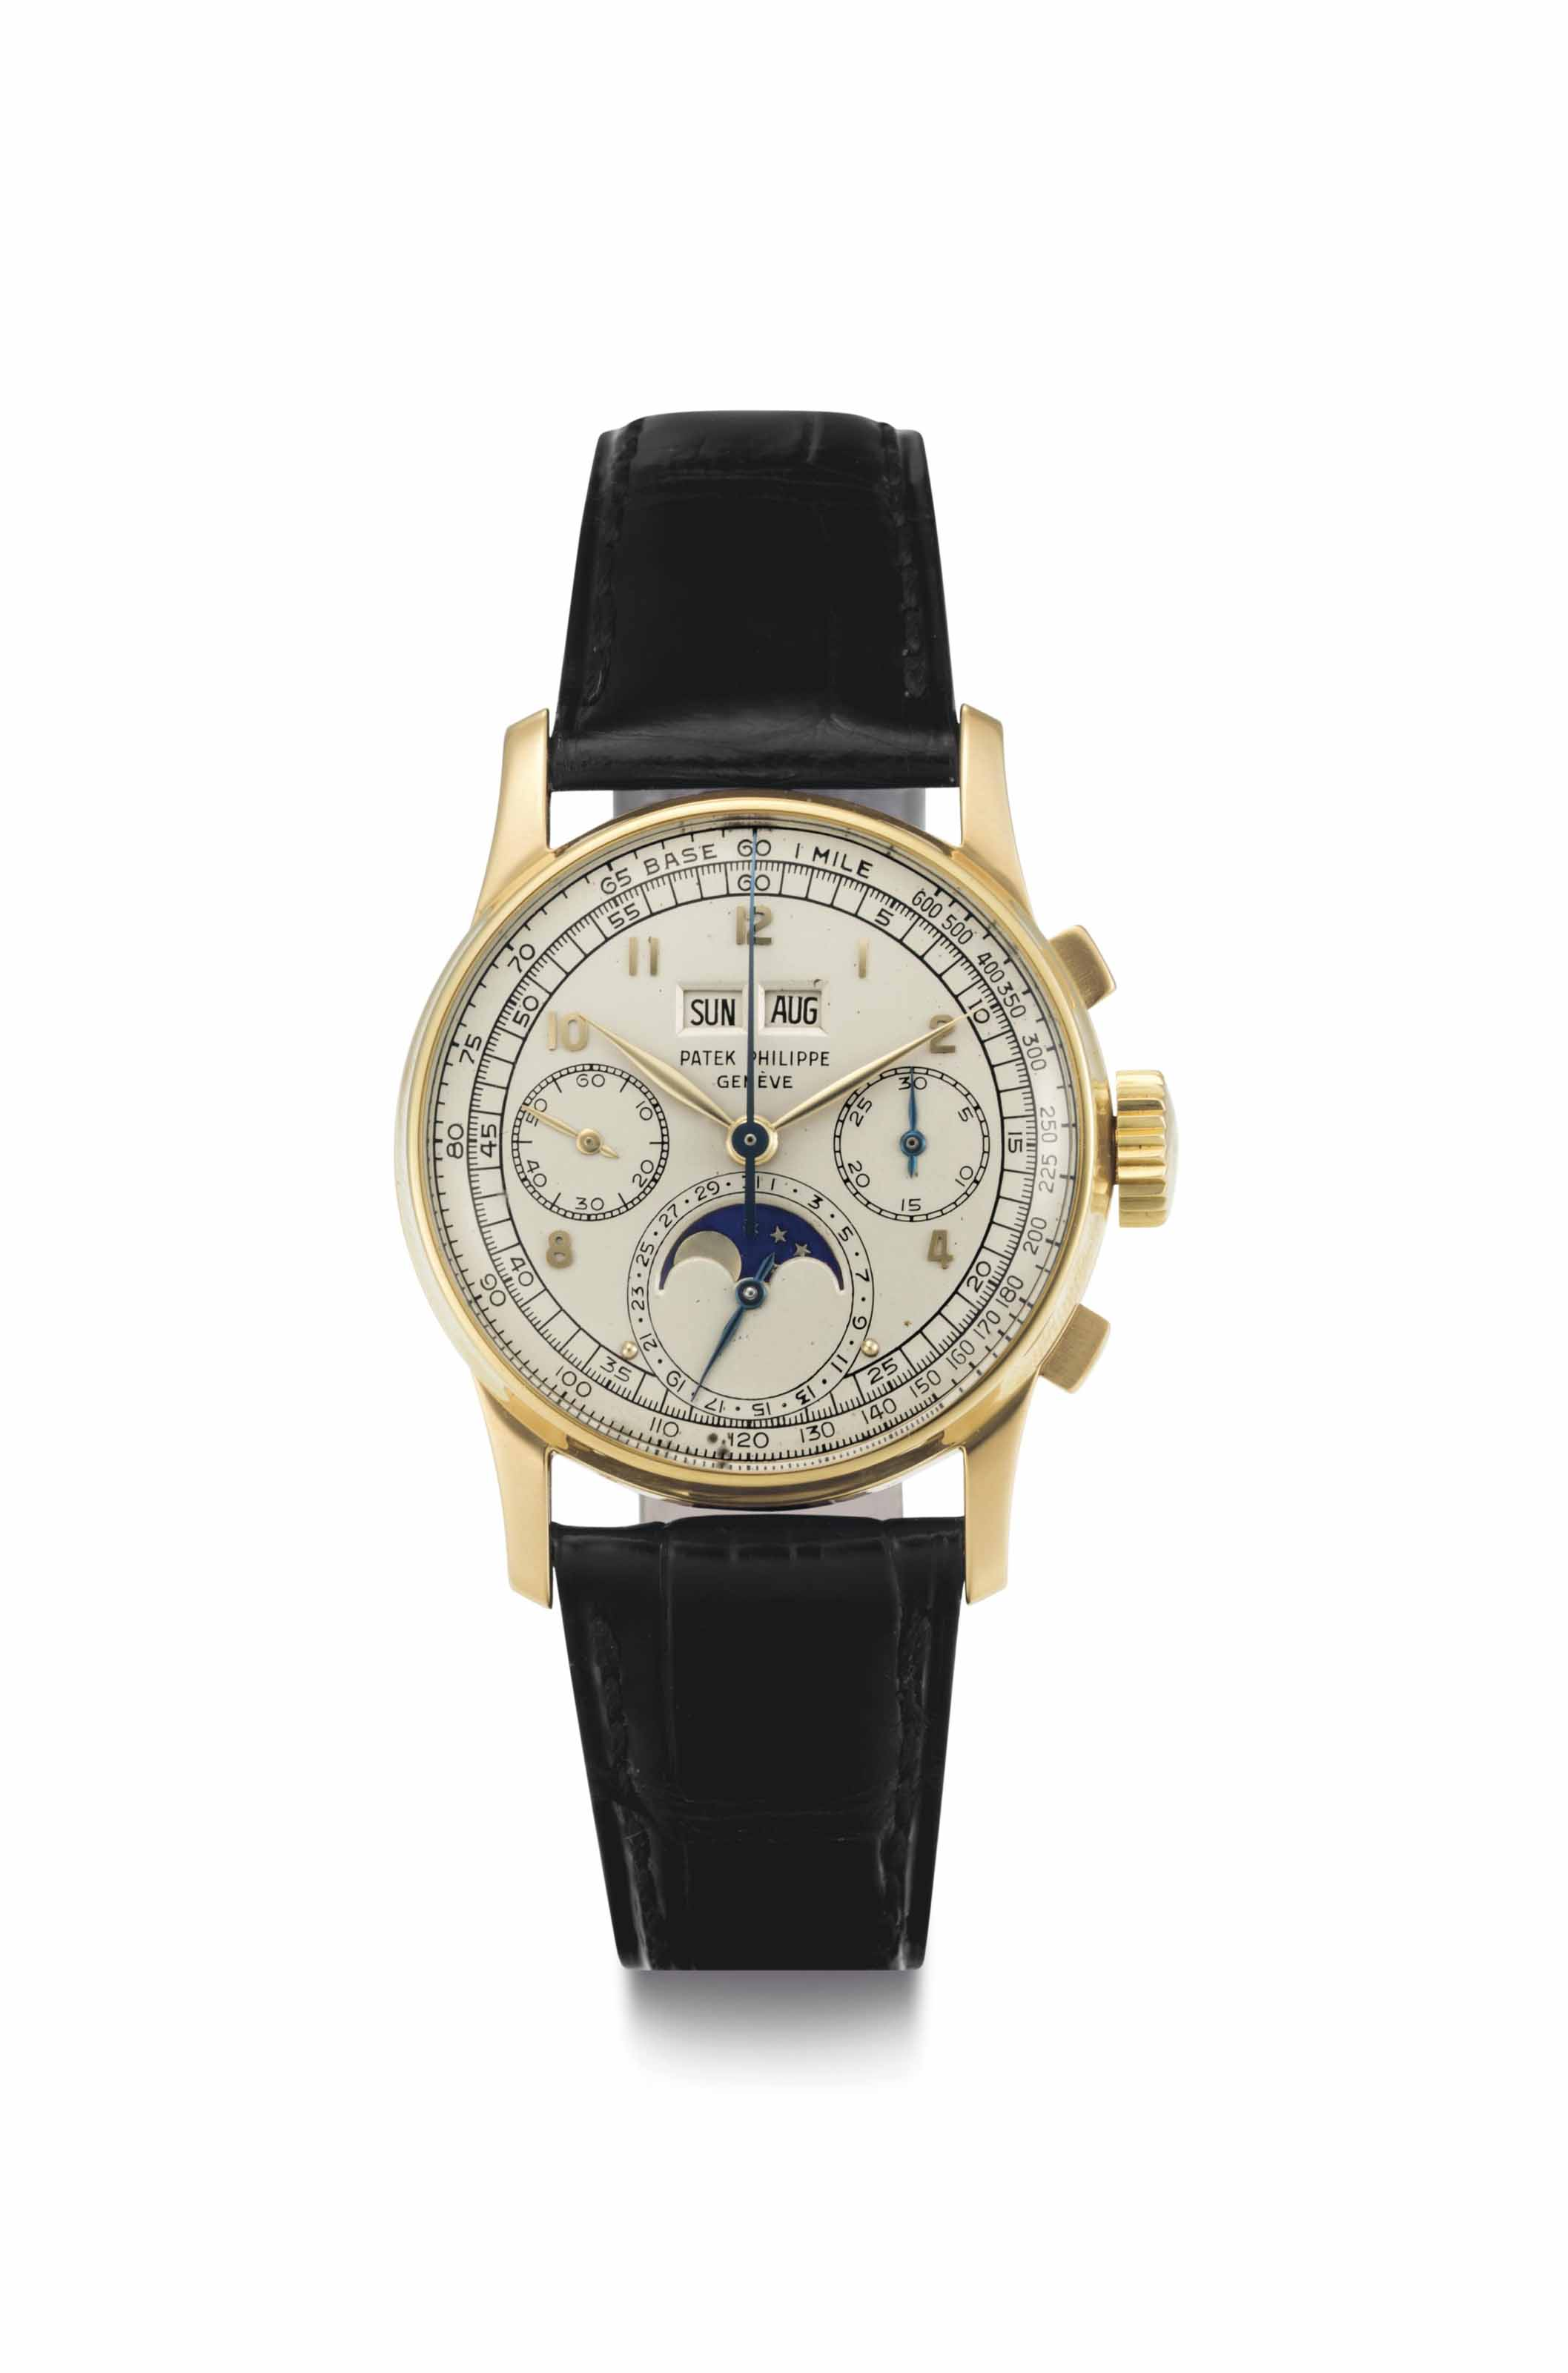 Patek Philippe. A Fine and Rare 18k Gold Perpetual Calendar Chronograph Wristwatch with Moon Phases